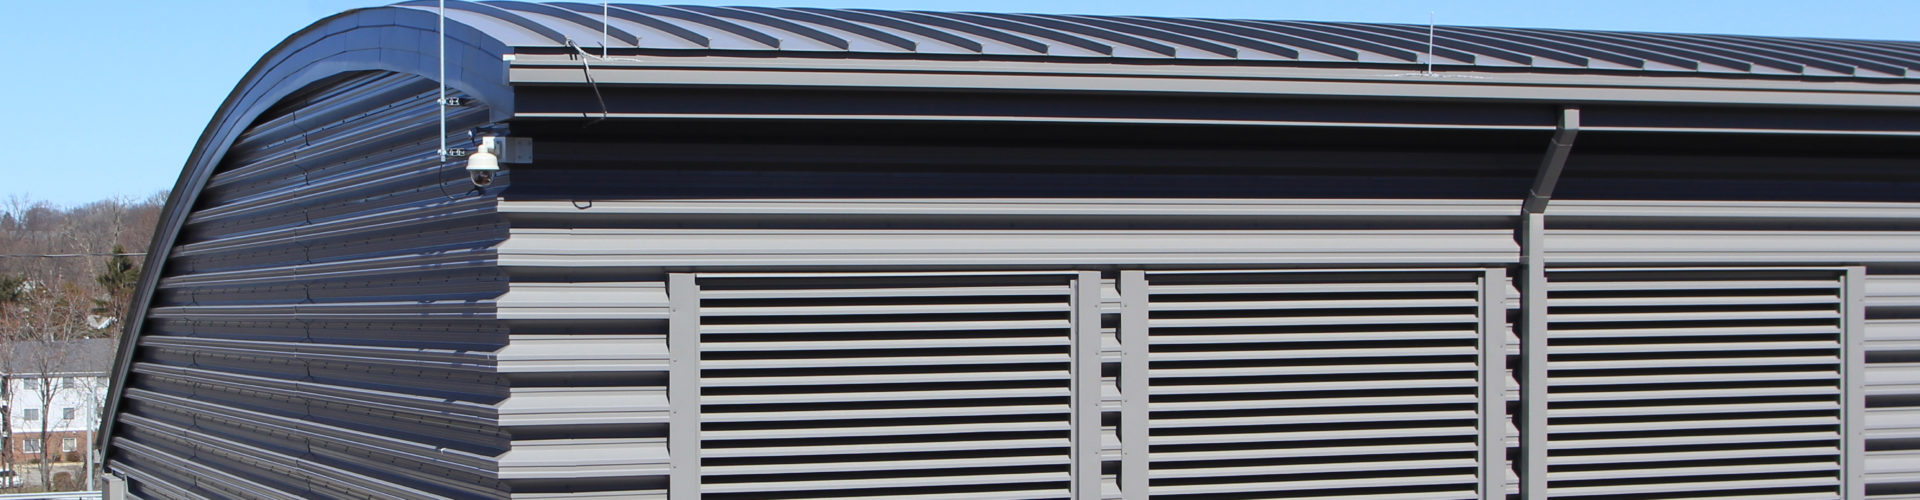 Curved Tee Lock Cr Tl25 Standing Seam Roof Panel